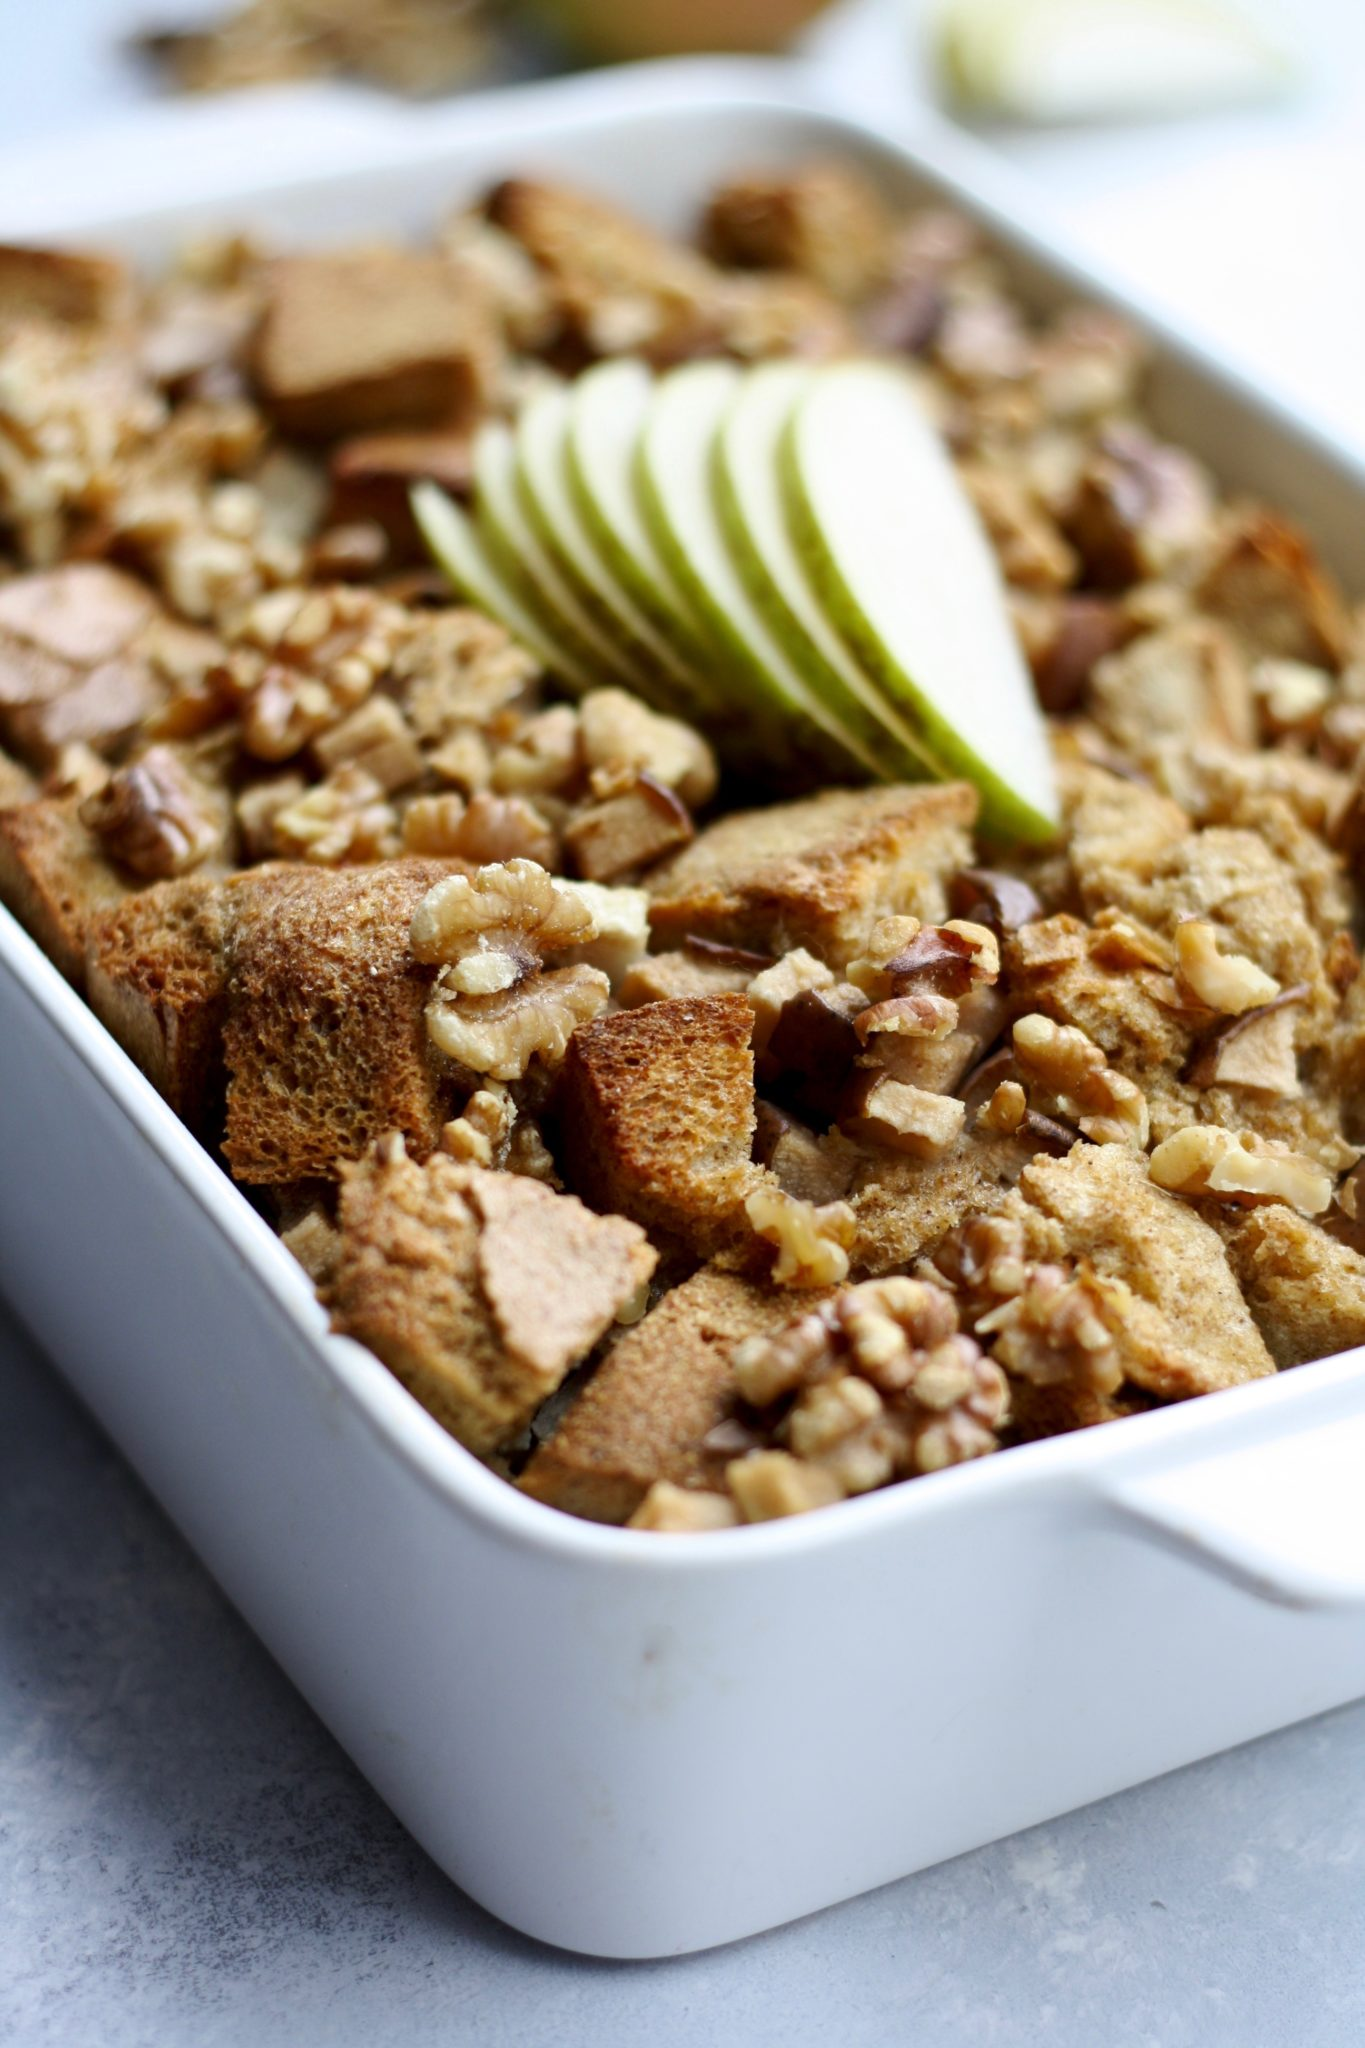 cardamom & cinnamon pear baked french toast with walnuts // cait's plate